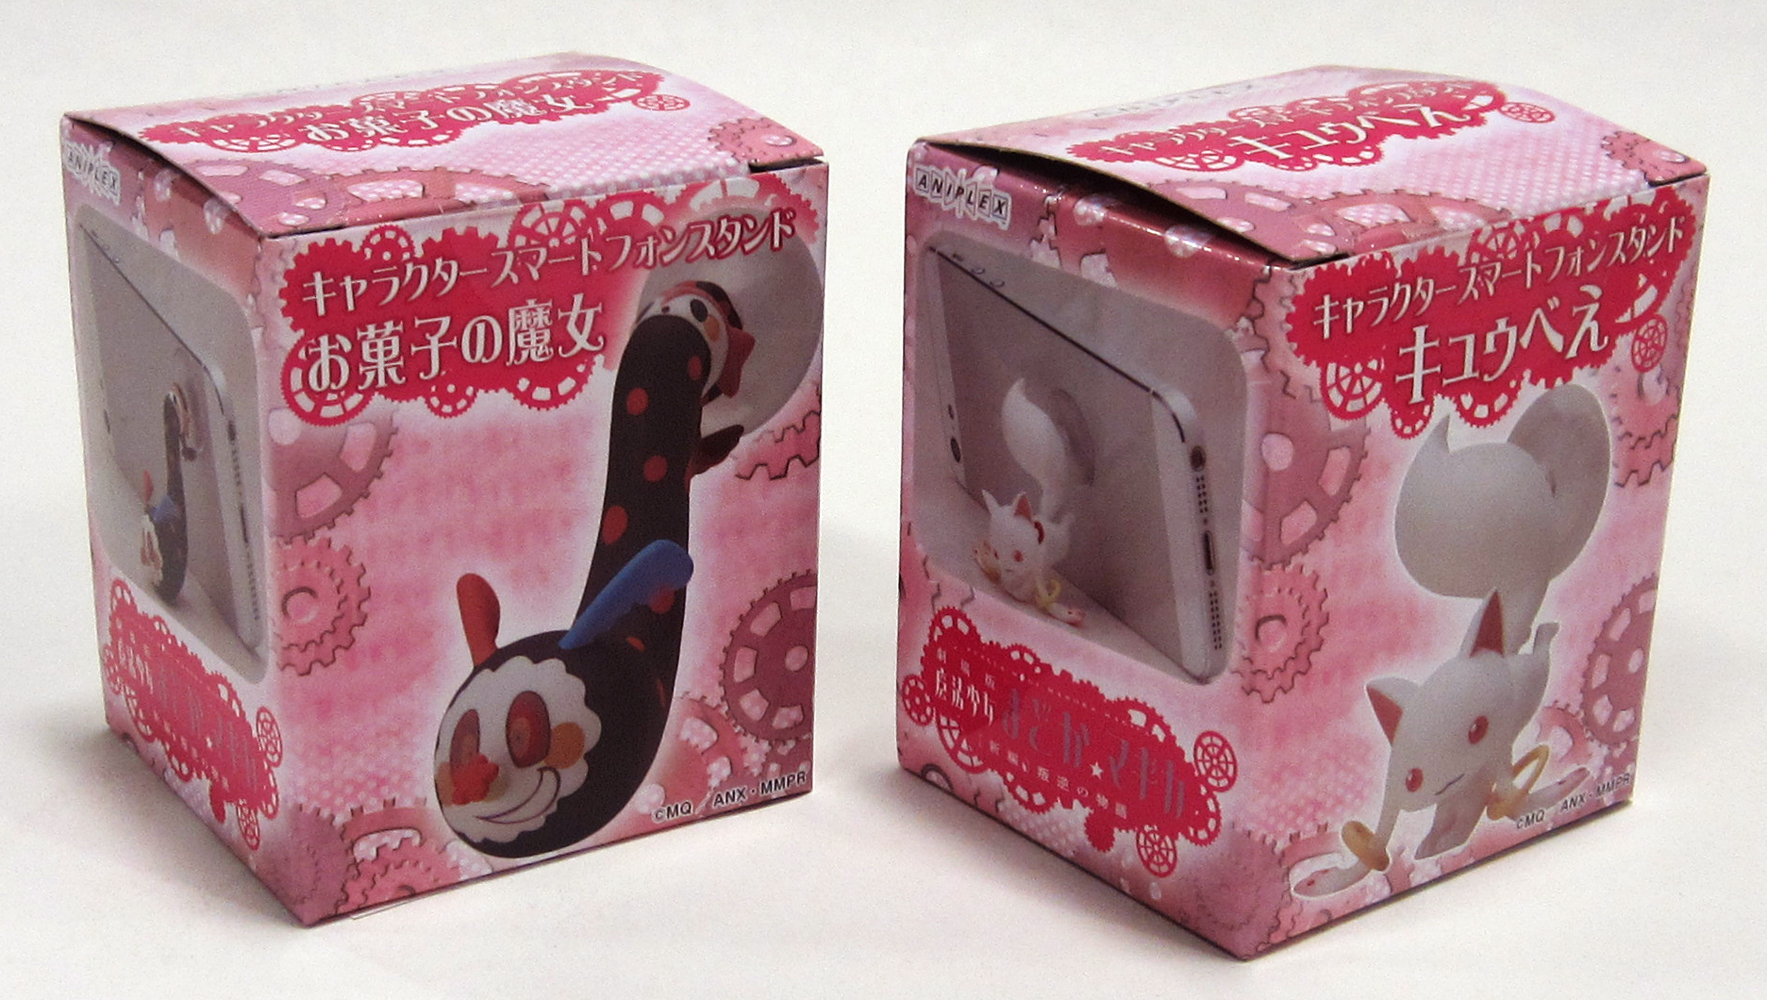 Puella Magi Madoka Magica Rebellion Merchandise Box Set